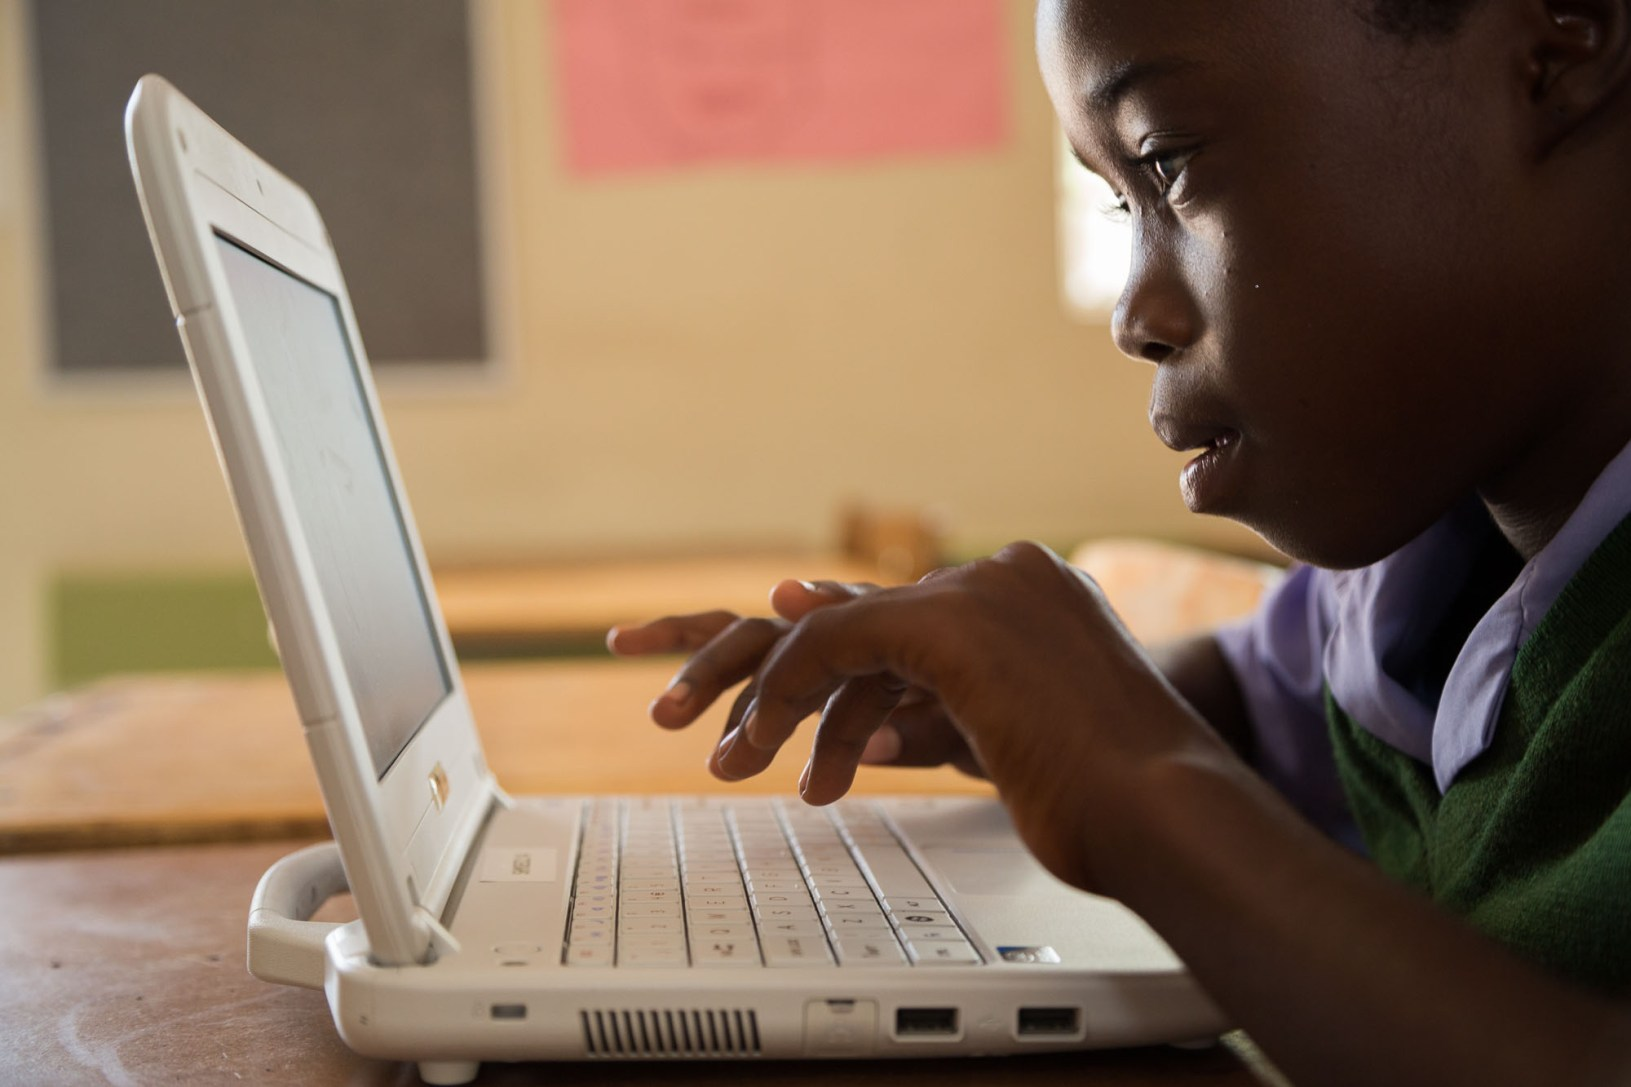 A sixth grade student learns using a laptop in Oshana Region, Namibia.